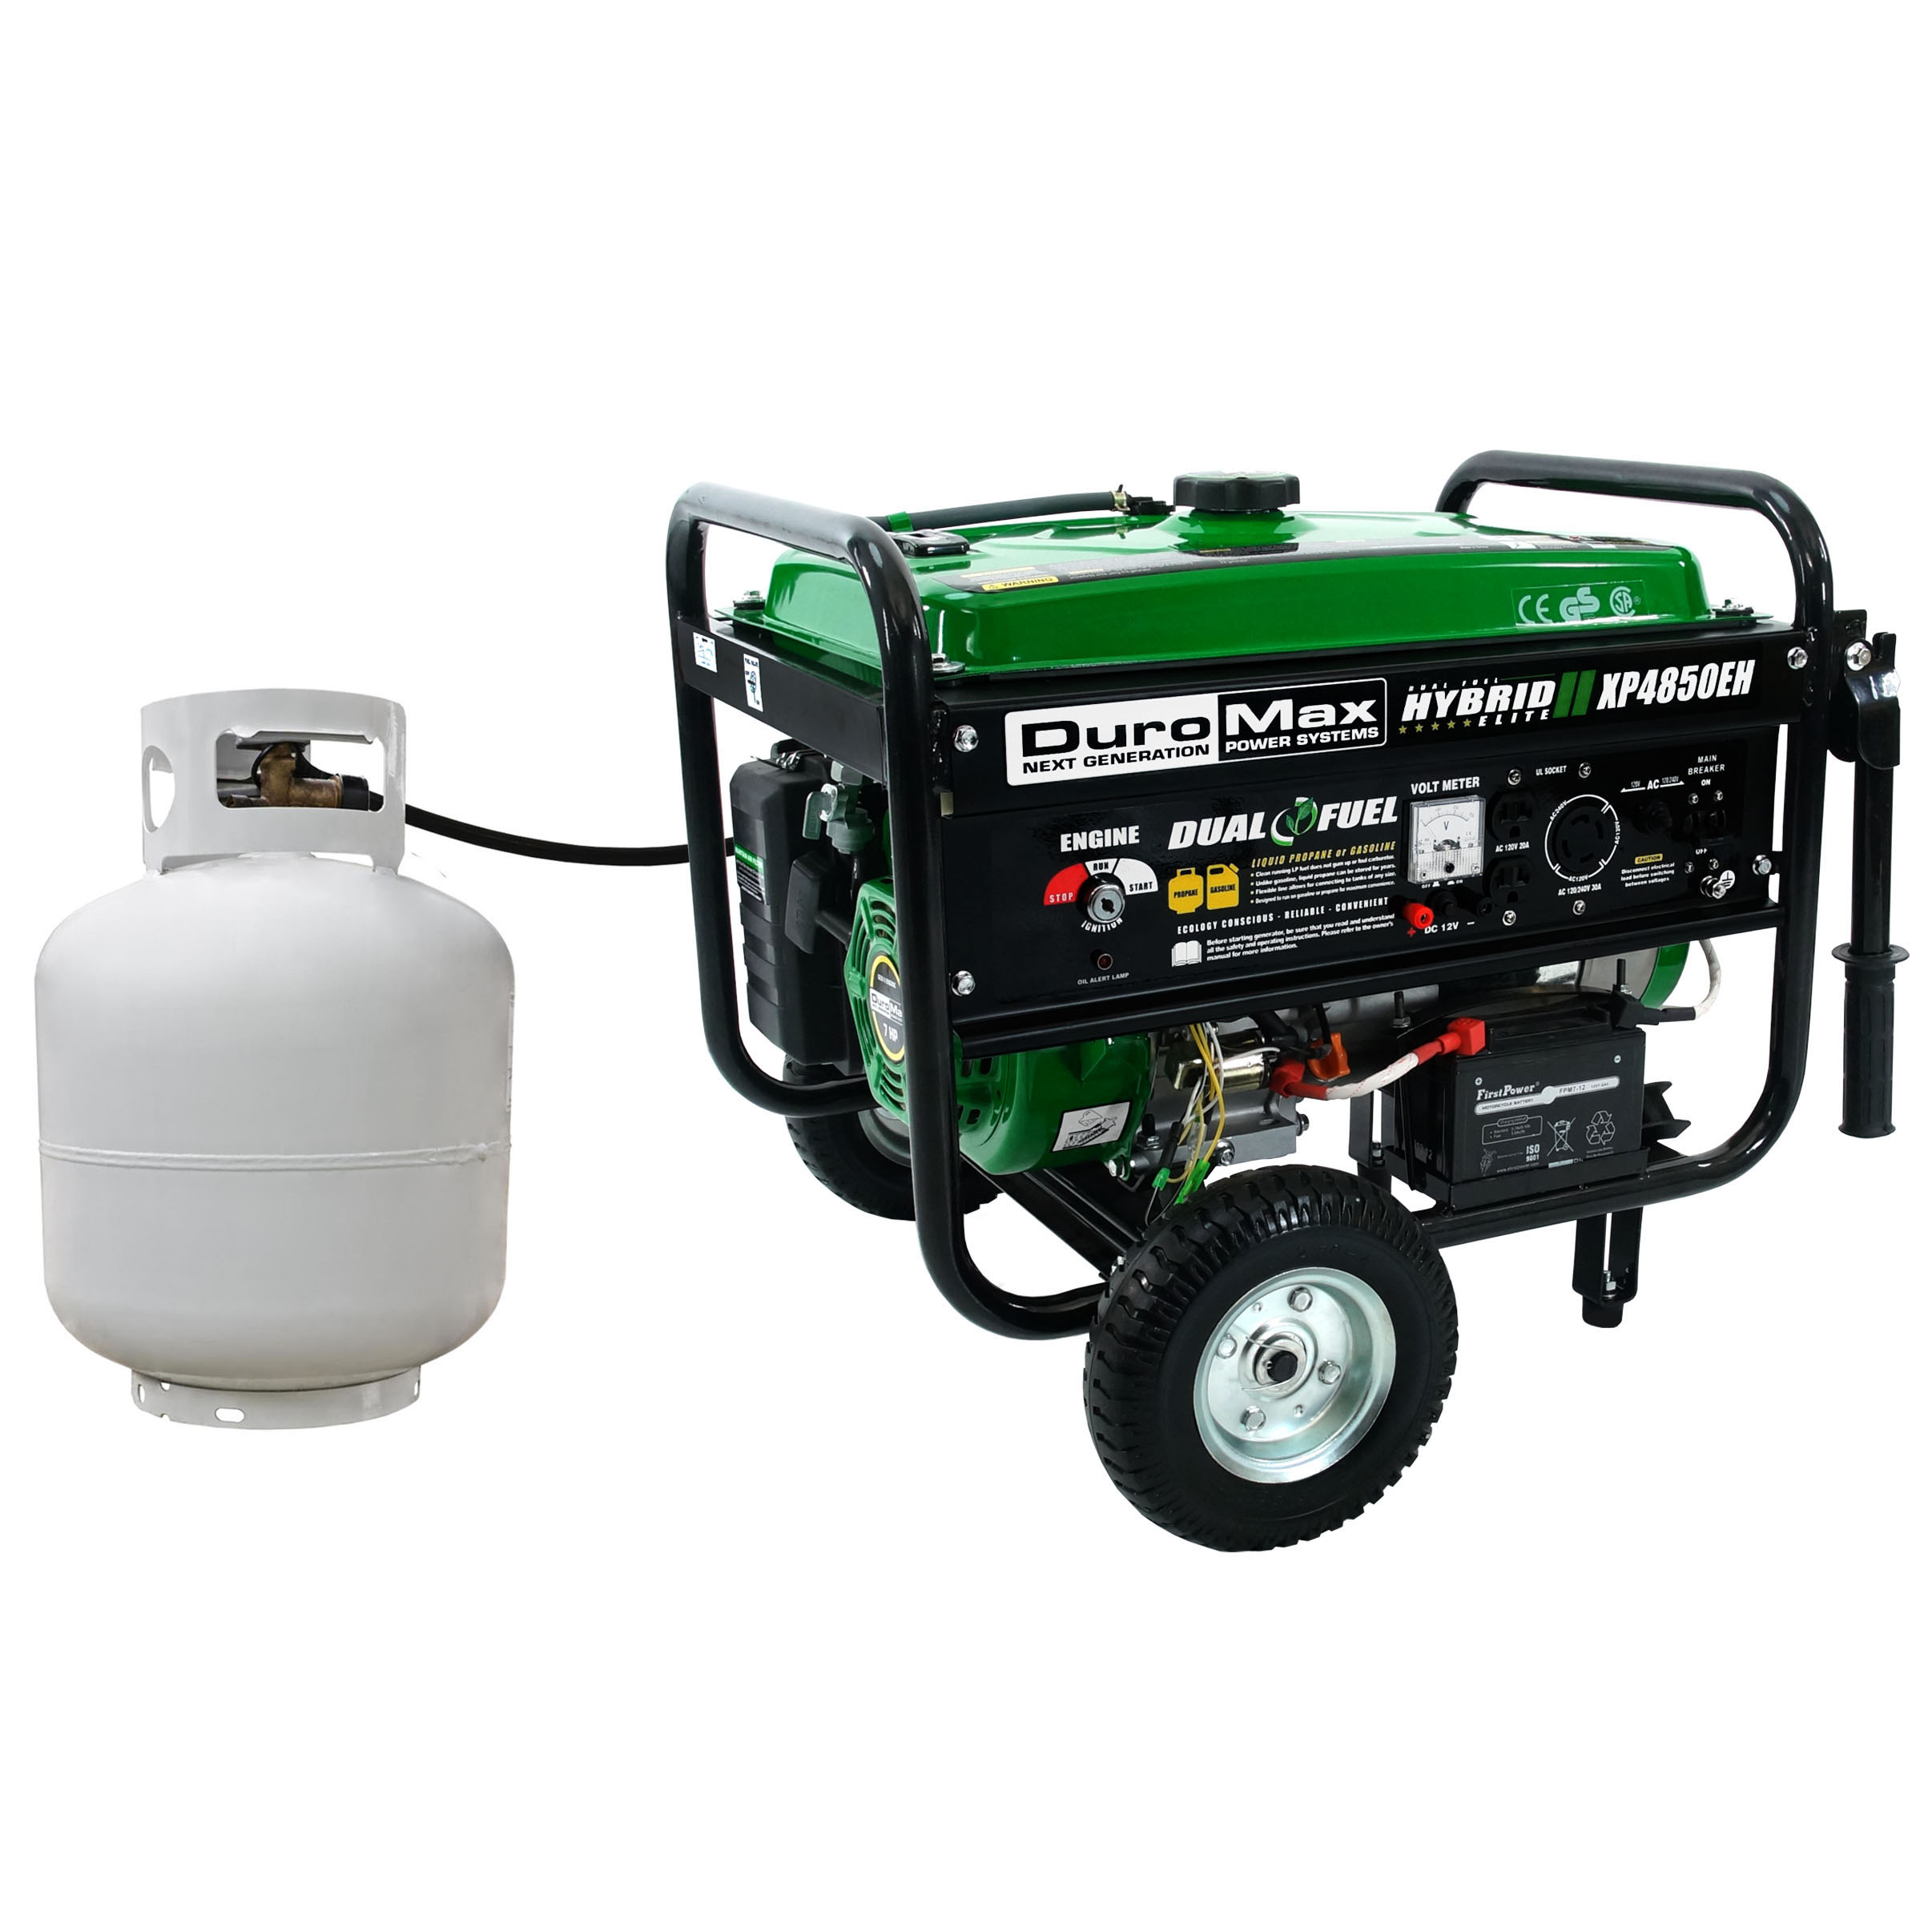 Duromax Xp4850eh 4850 Watt Dual Fuel Hybrid Generator W Electric Start Circuit Breaker Ebay